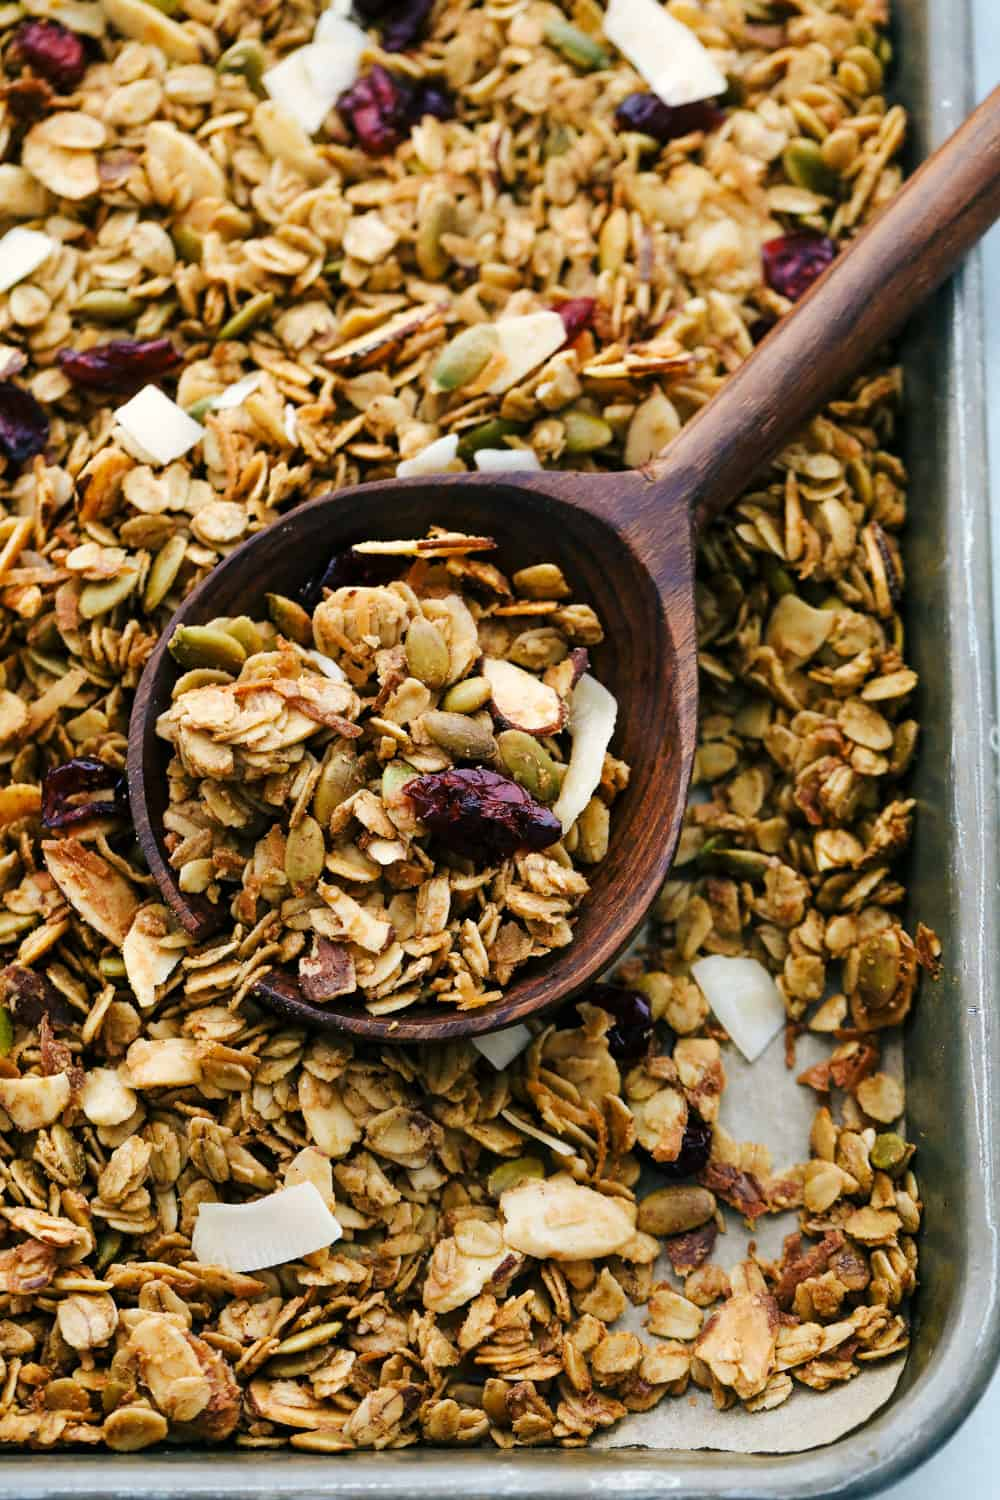 Homemade baked granola on a sheet pan with a large wooden spoon scooping it up.